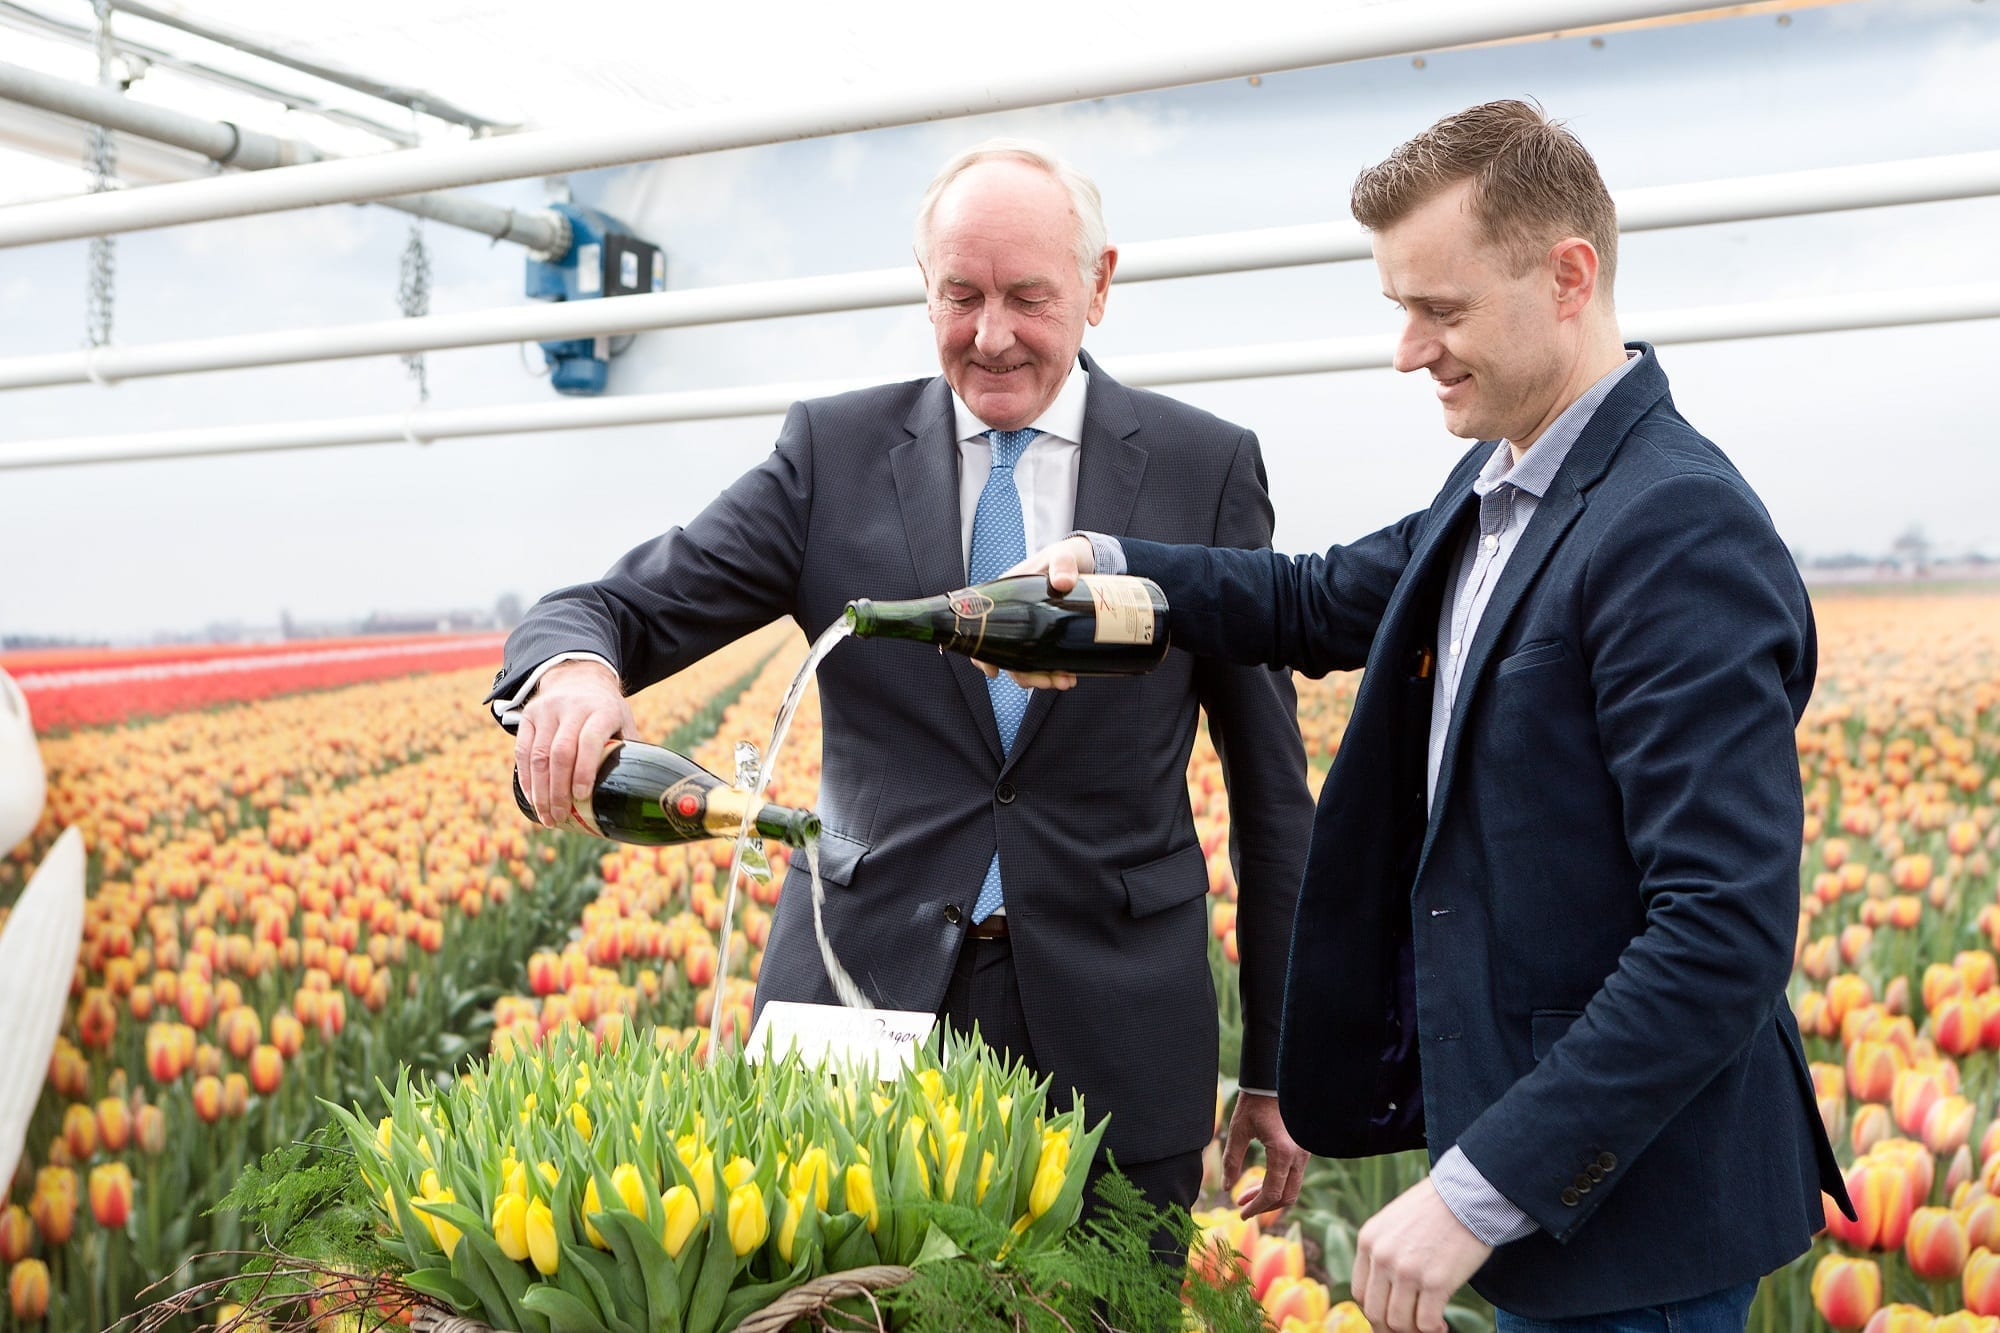 20170315 - Photo - Royal Commissioner Johan Remkes baptizes tulip Golden Dragon